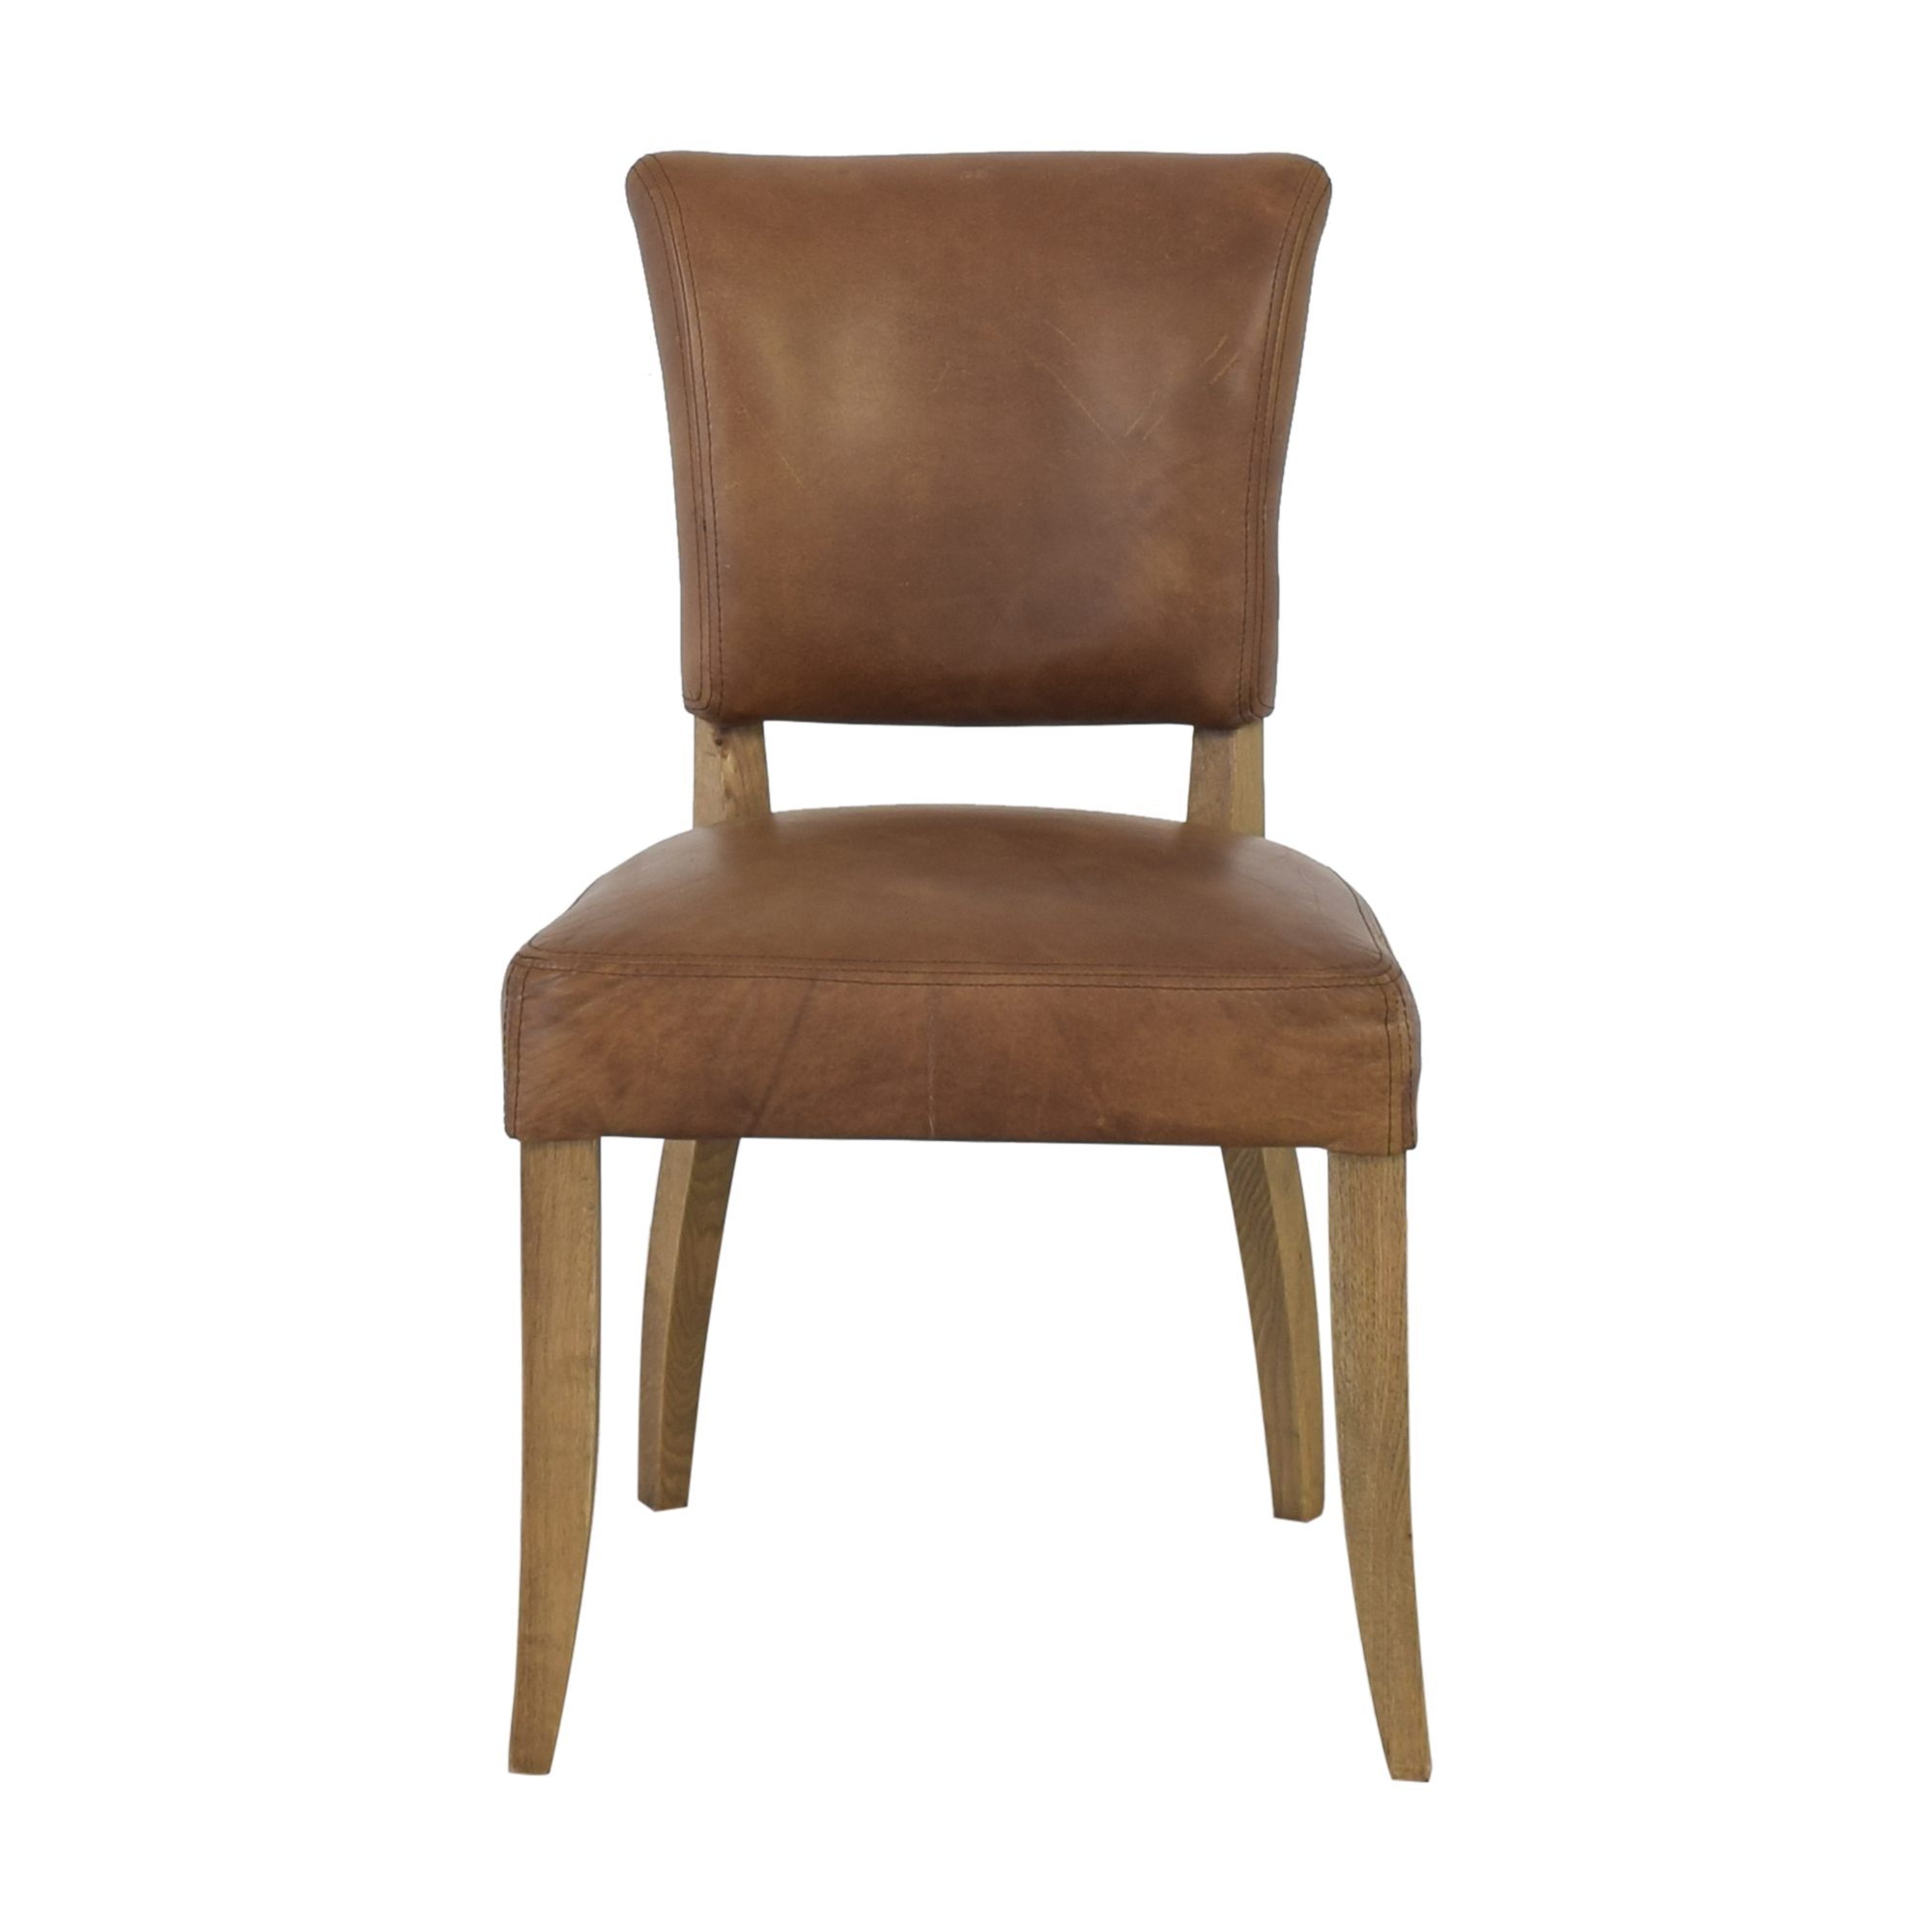 Restoration Hardware Restoration Hardware Adele Leather Side Chair Dining Chairs